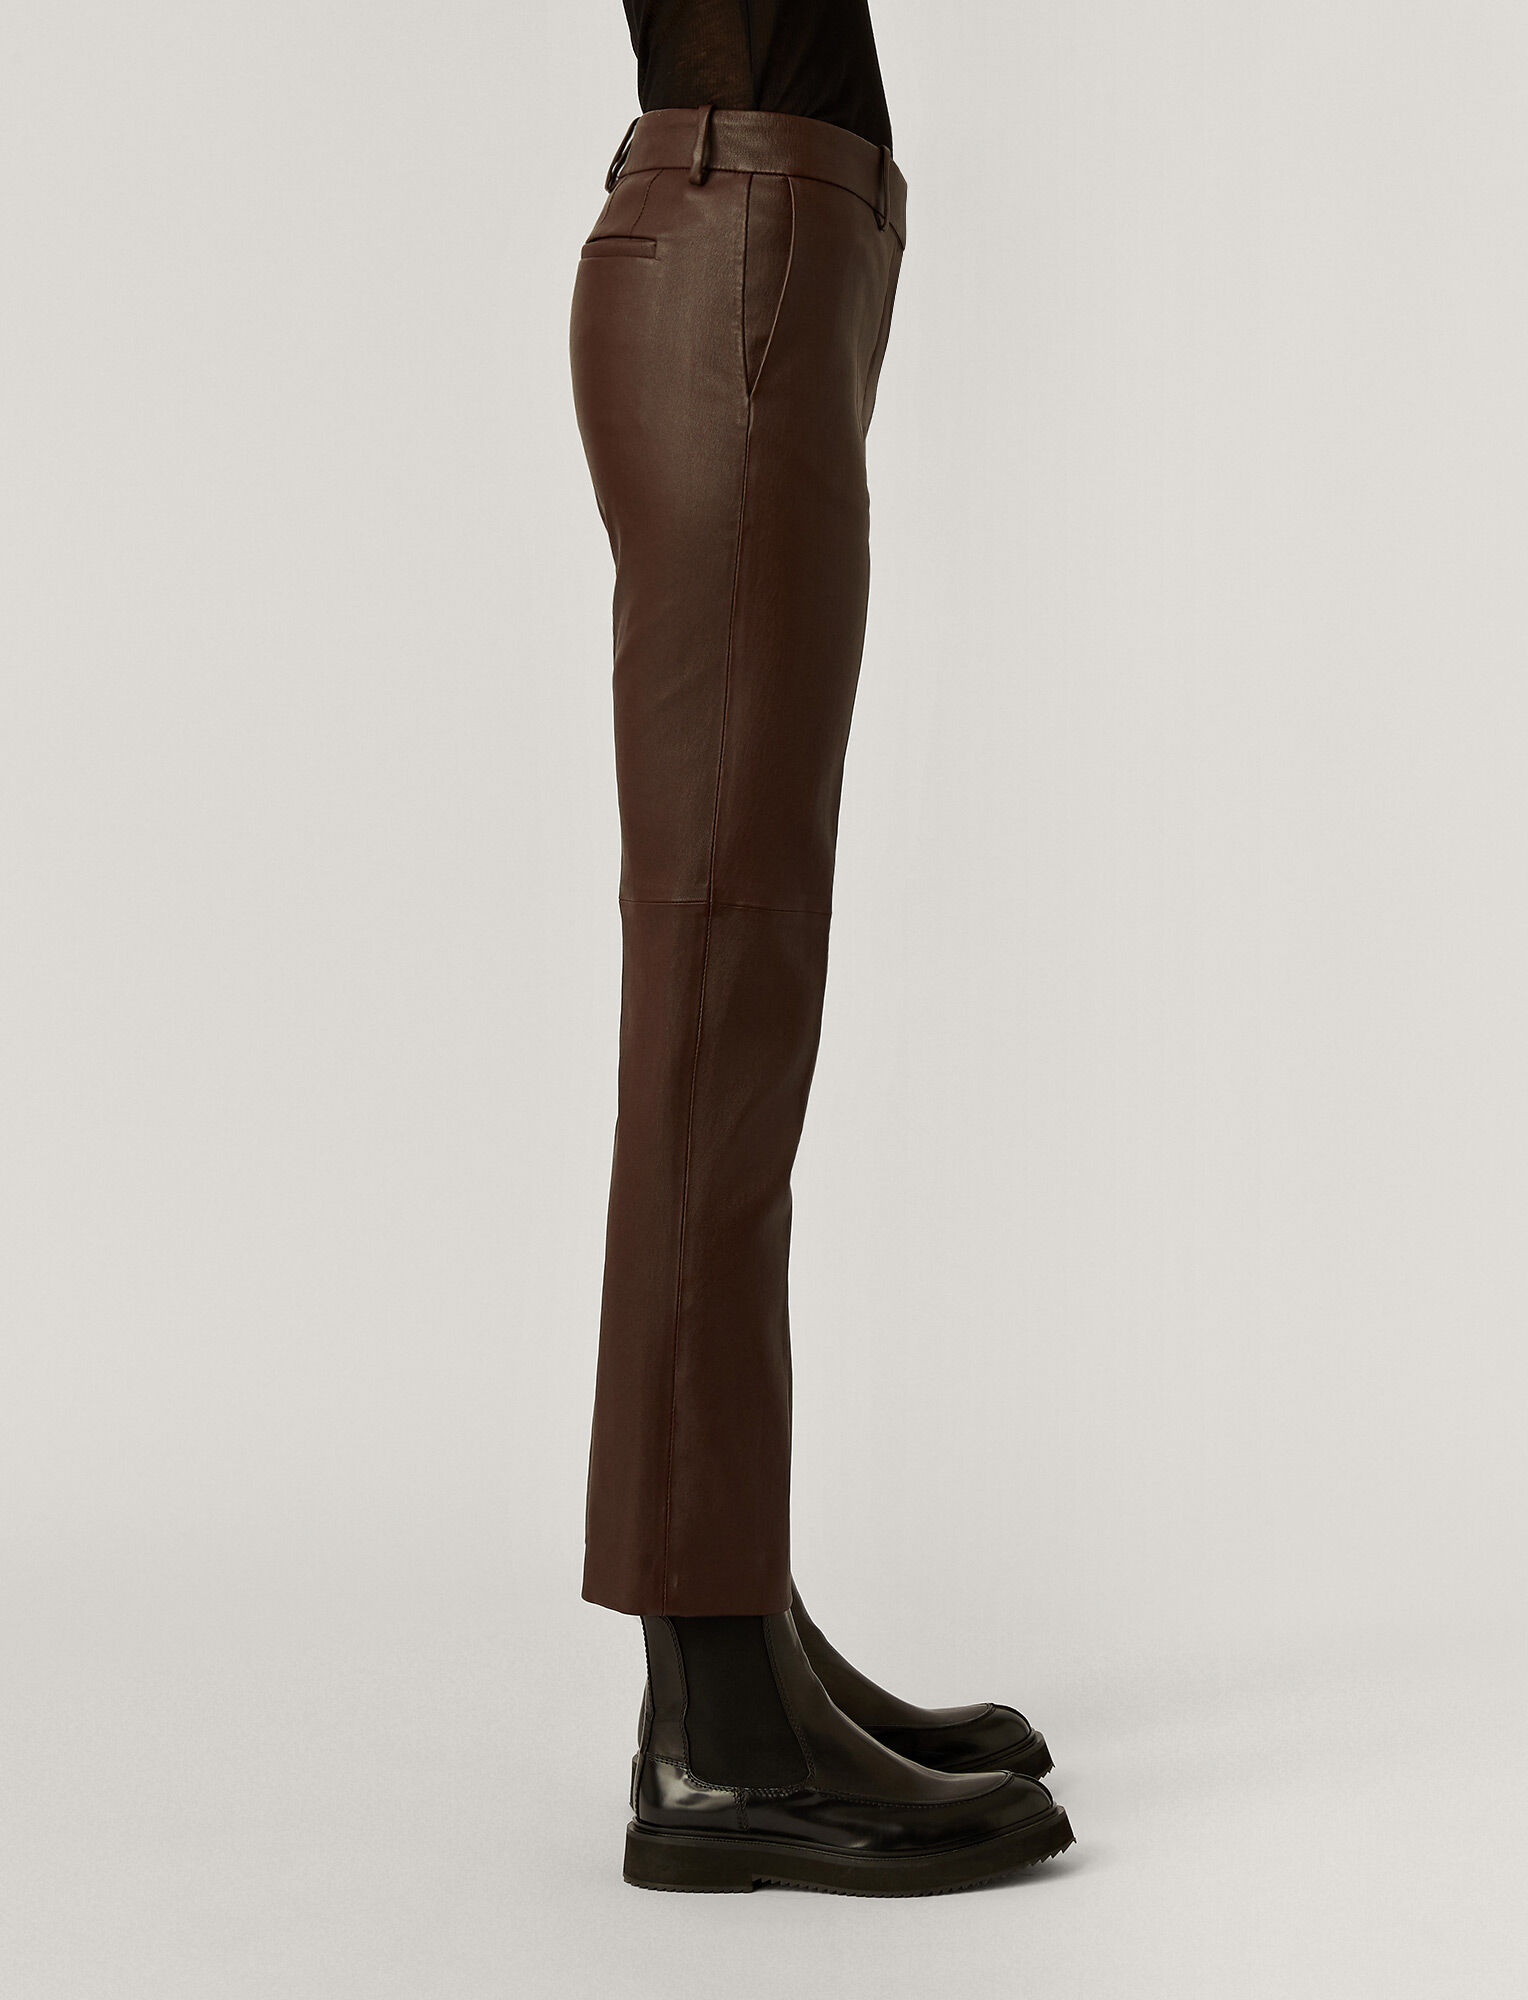 Joseph, Coleman Leather Stretch Trousers, in Plum